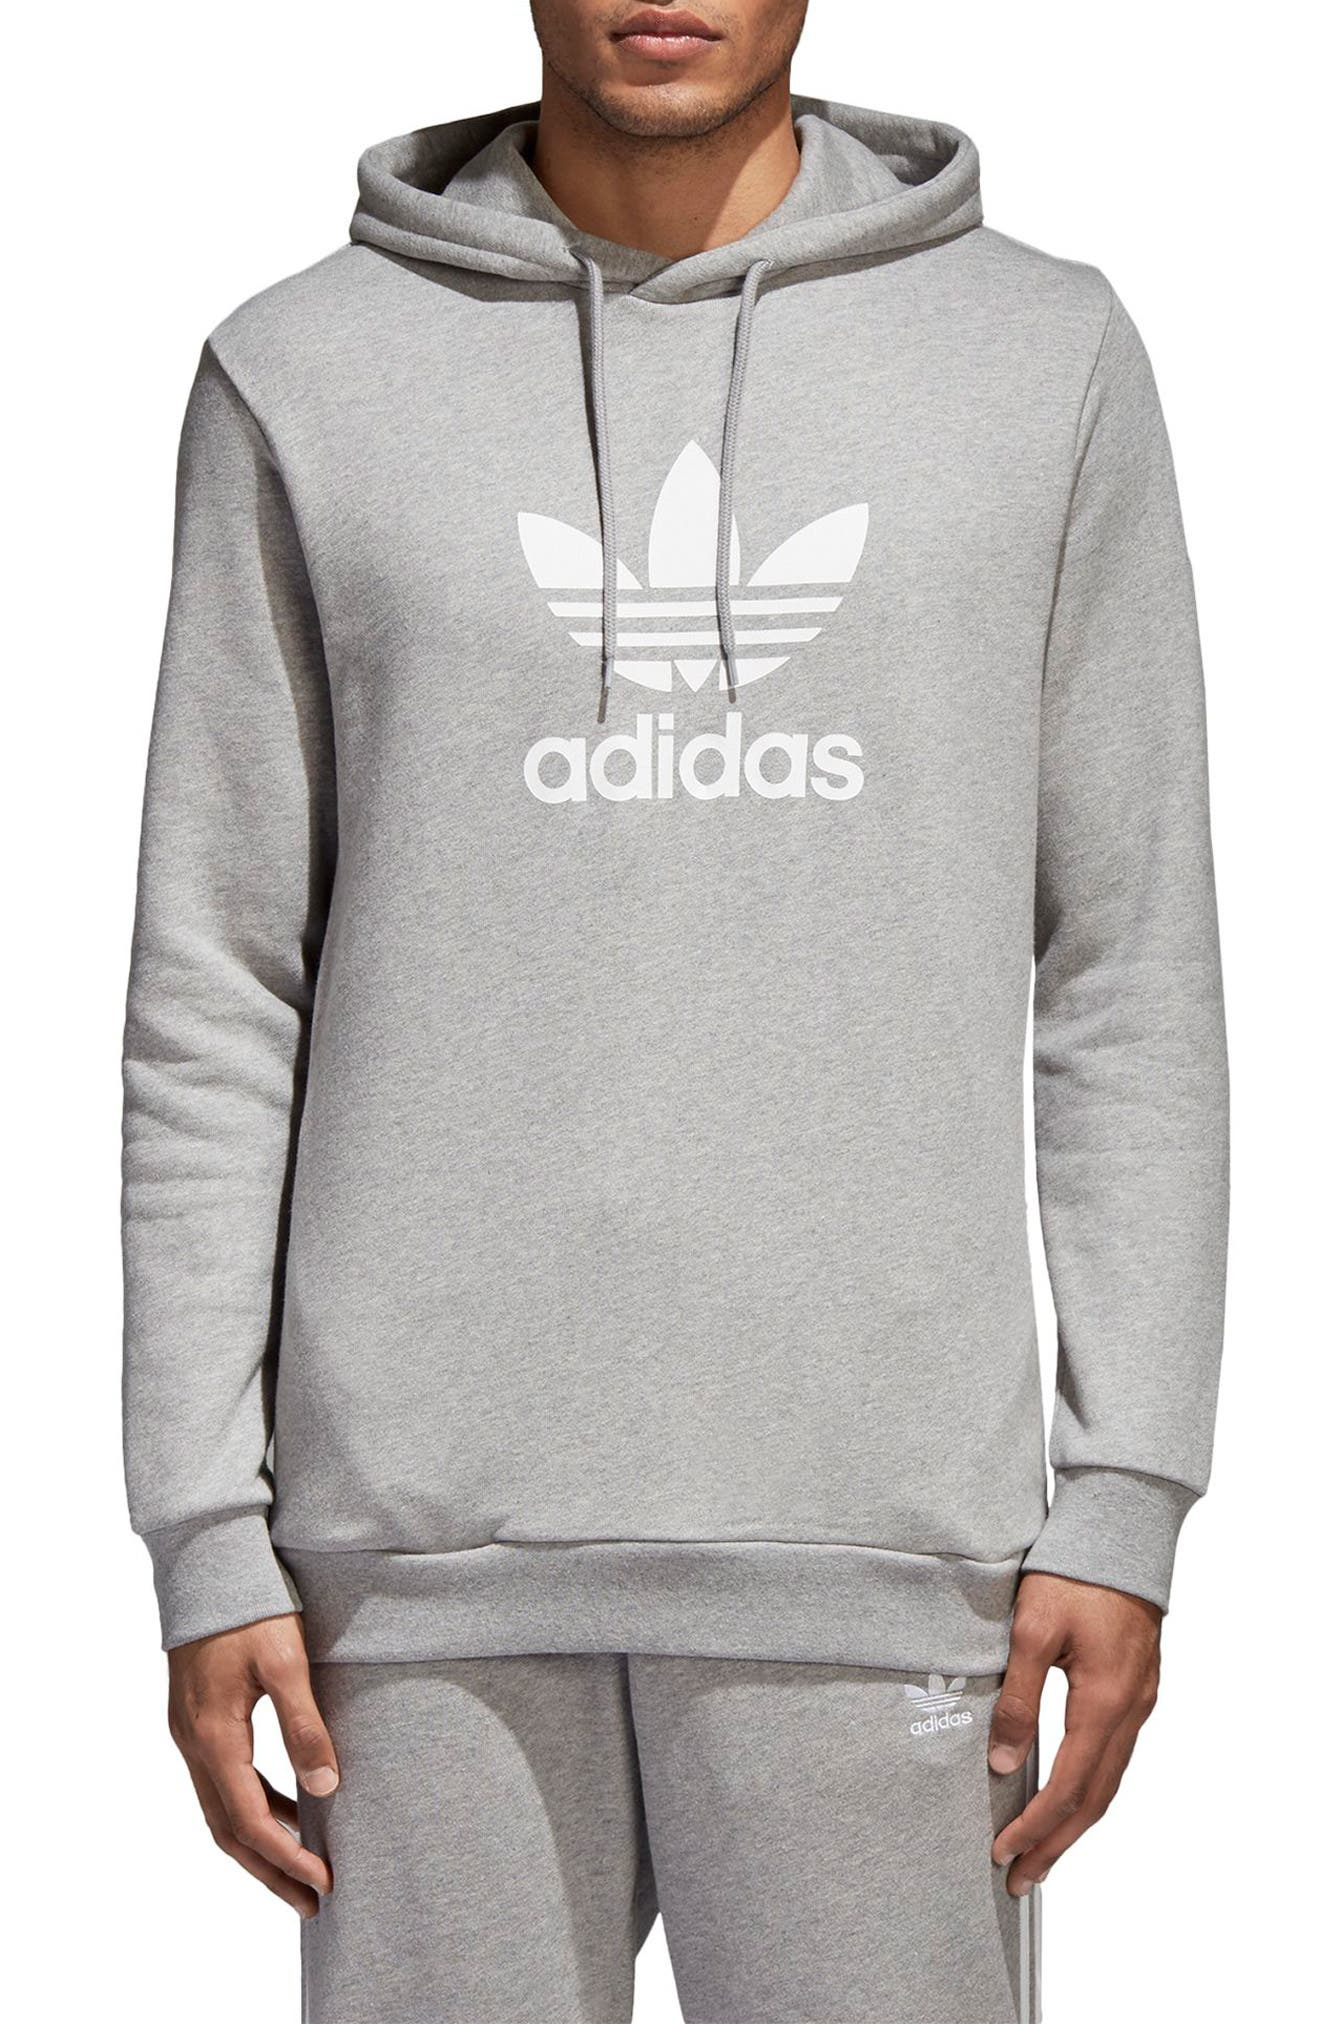 ADIDAS ORIGINALS Trefoil Warm-Up Hoodie, Main, color, 035